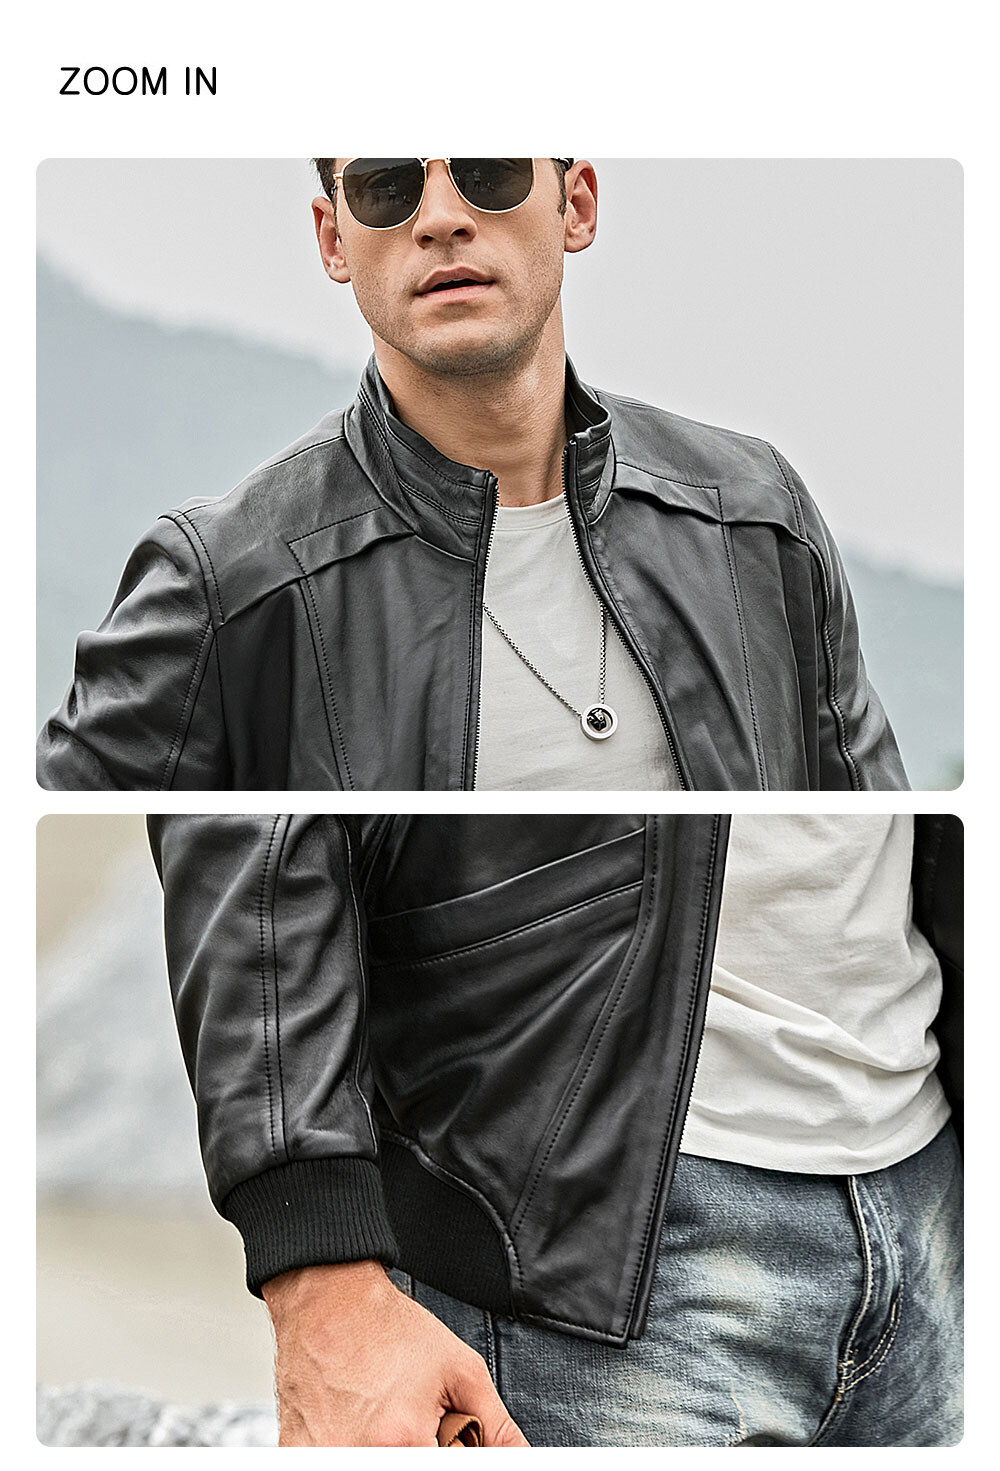 Men's Stand Collar Leather Motorcycle Jacket  Buy stand collar flavor leather motorcycle jacket| stand collar flavor leather motorcycle jacket brands